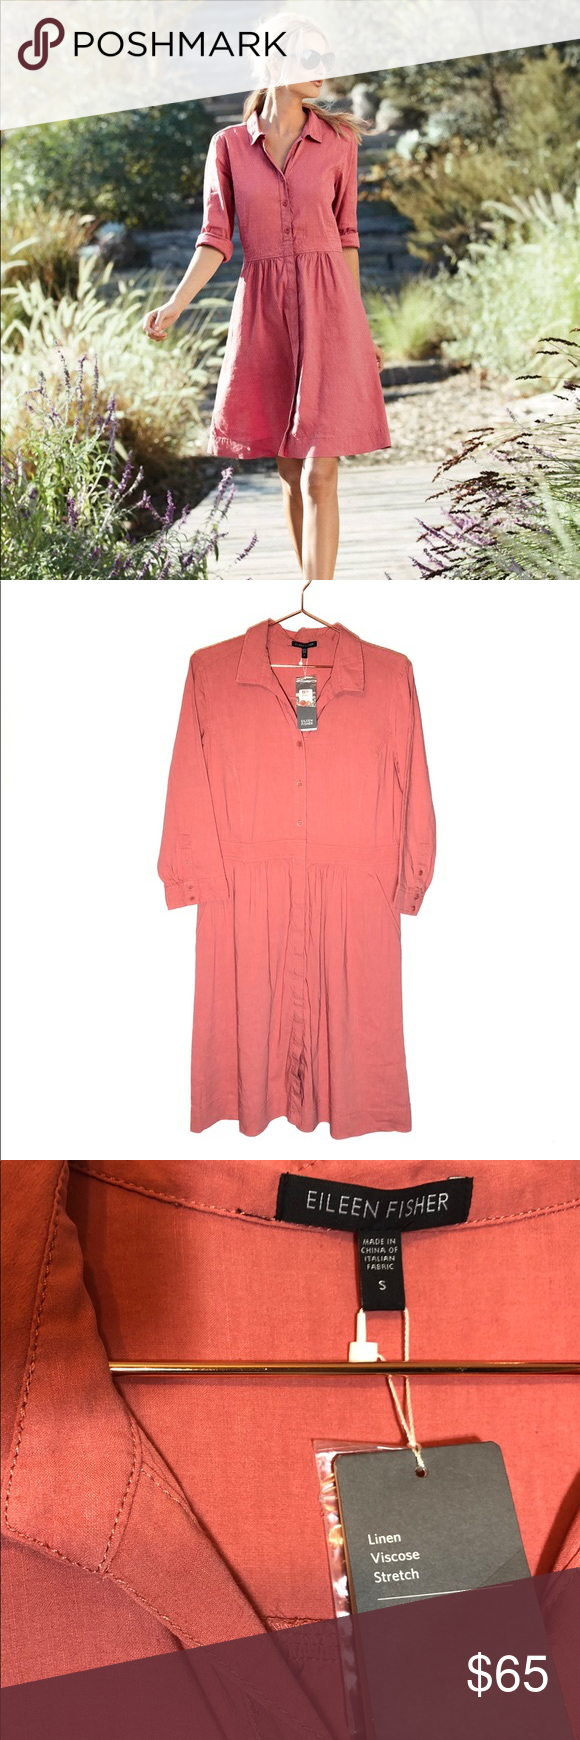 Eileen Fisher Classic Shirt Dress Coral Small Eileen Fisher Classic Linen Shirt Dress Size Small Color Classic Shirt Dress Eileen Fisher Dress Eileen Fisher